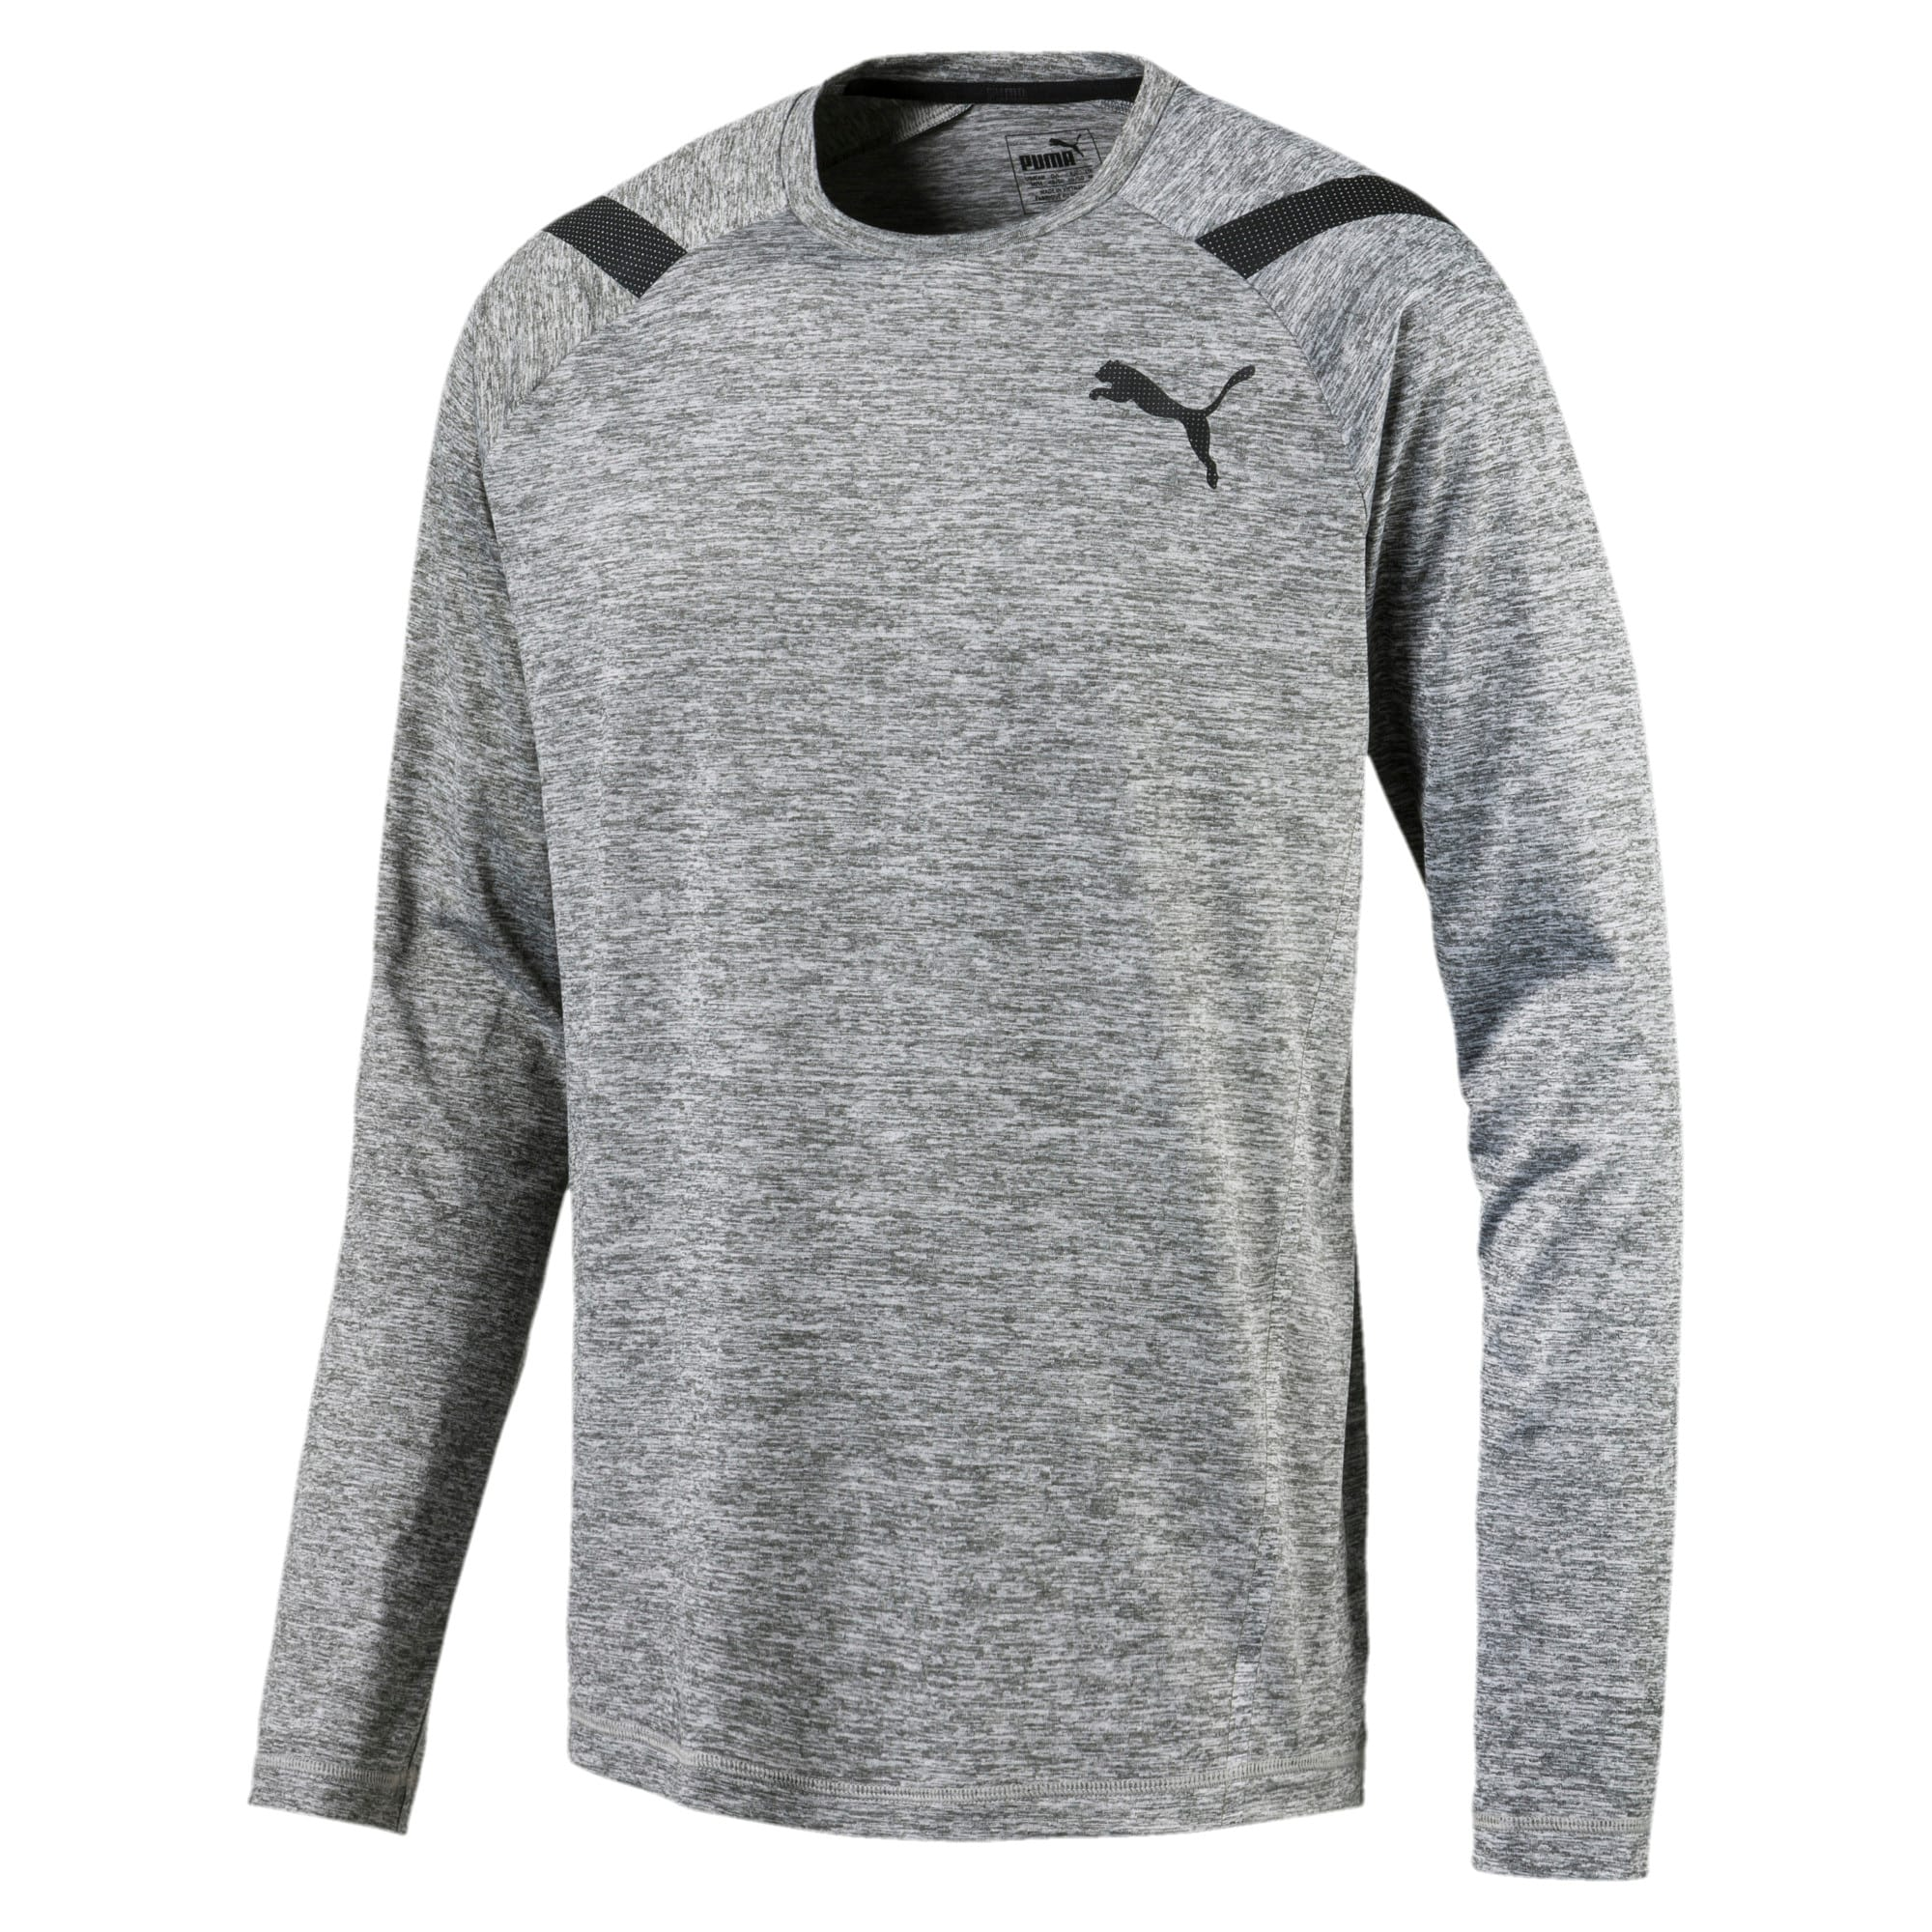 Active Training Men's Bonded Tech Long Sleeve, Medium Gray Heather, large-IND